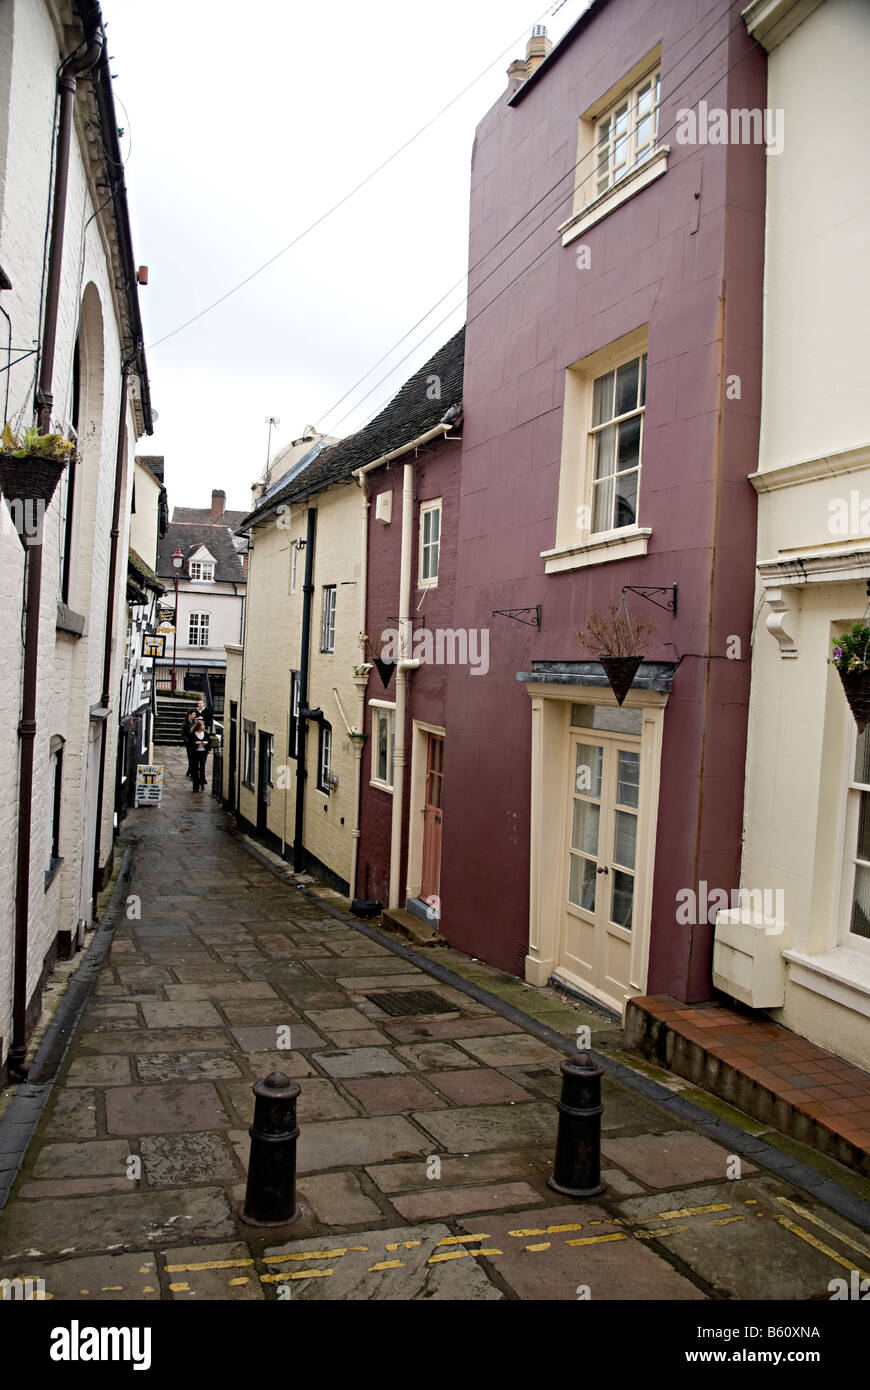 a town street in bridgenorth with terraced town houses Stock Photo